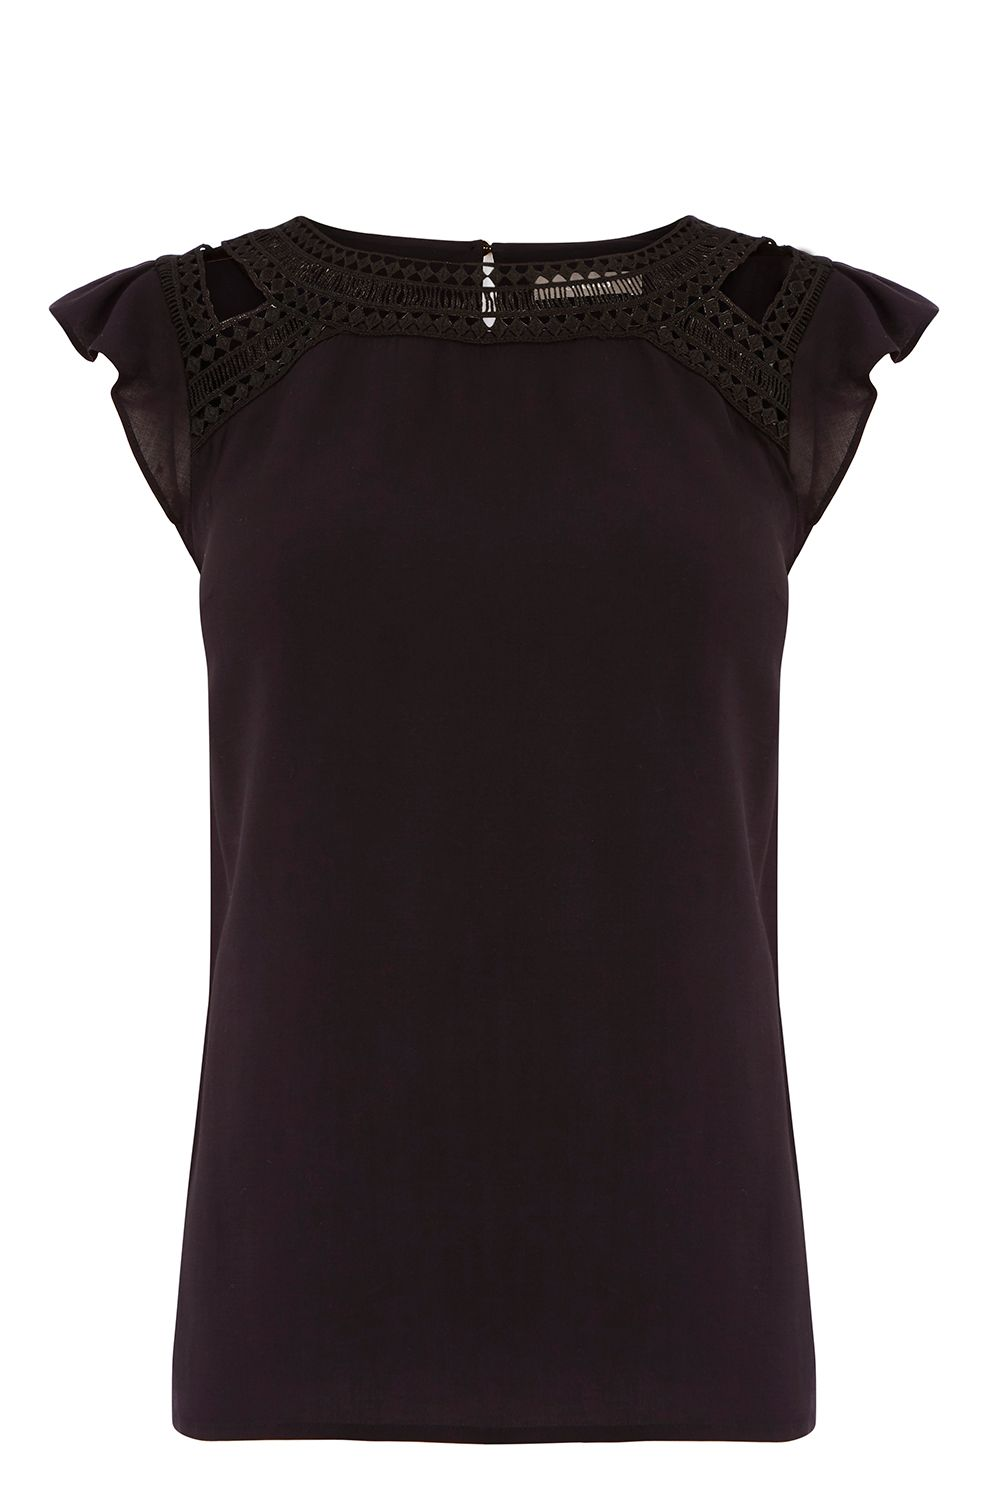 Oasis AZTEC LACE TRIM TEE, Black